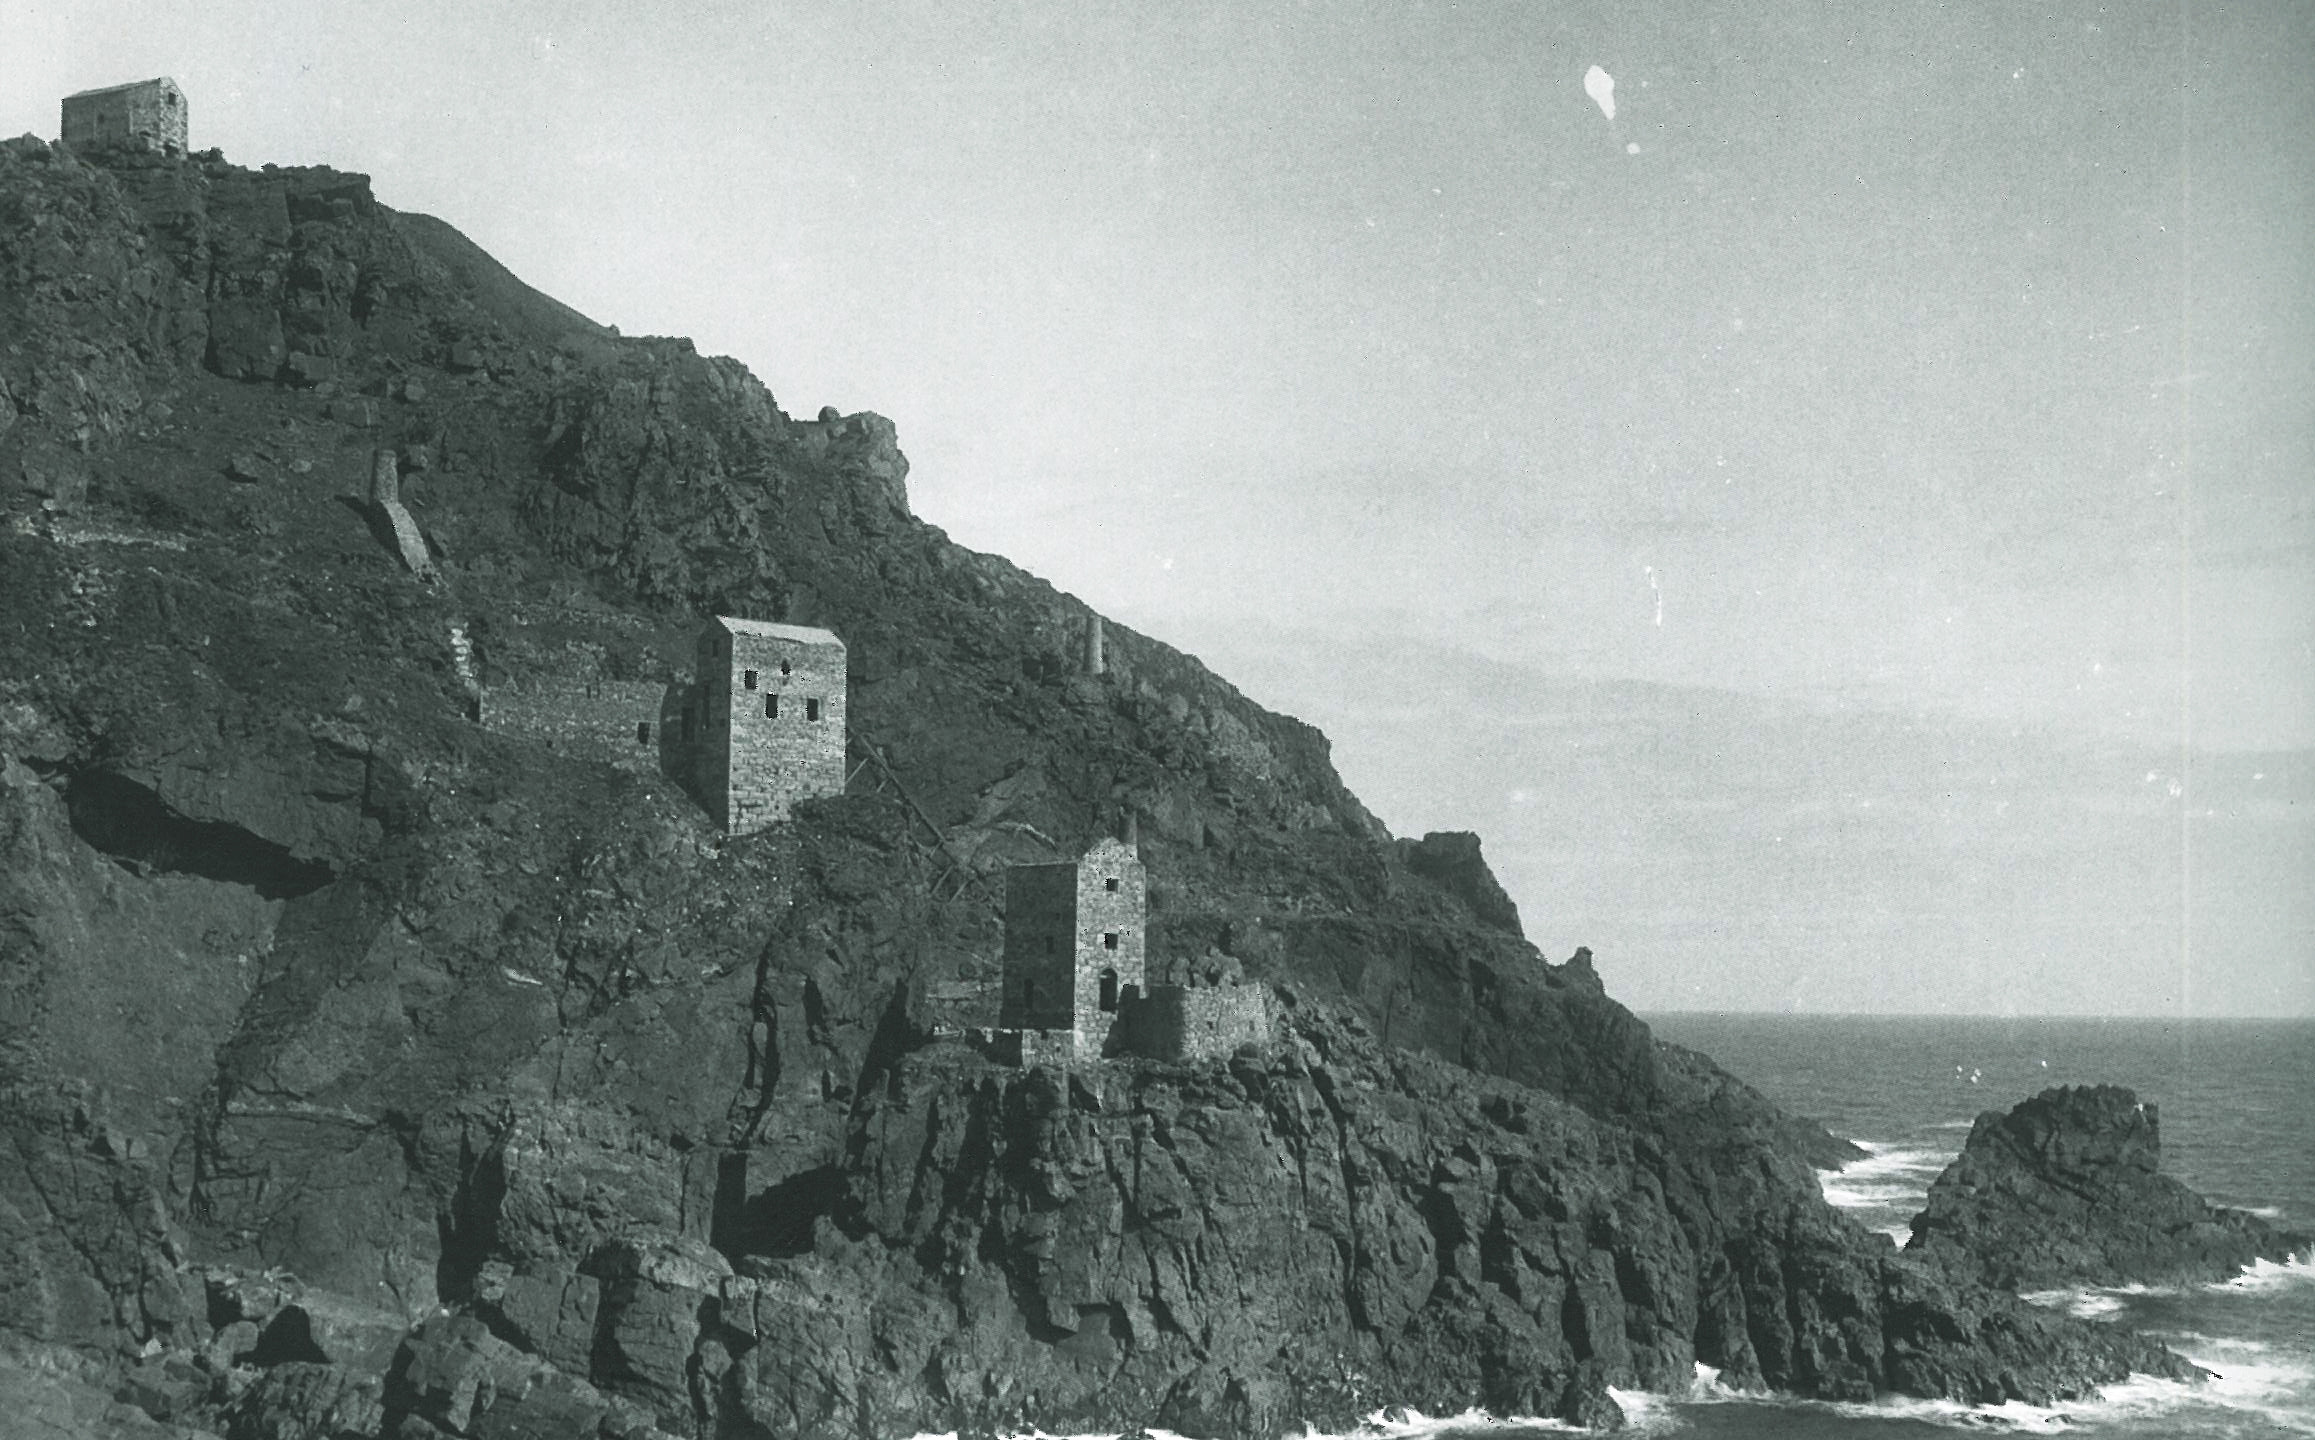 Wheal Cock section of Botallack mine. This derelict scene was common across west Cornwall as the mines closed one after the other throughout the early 20th century